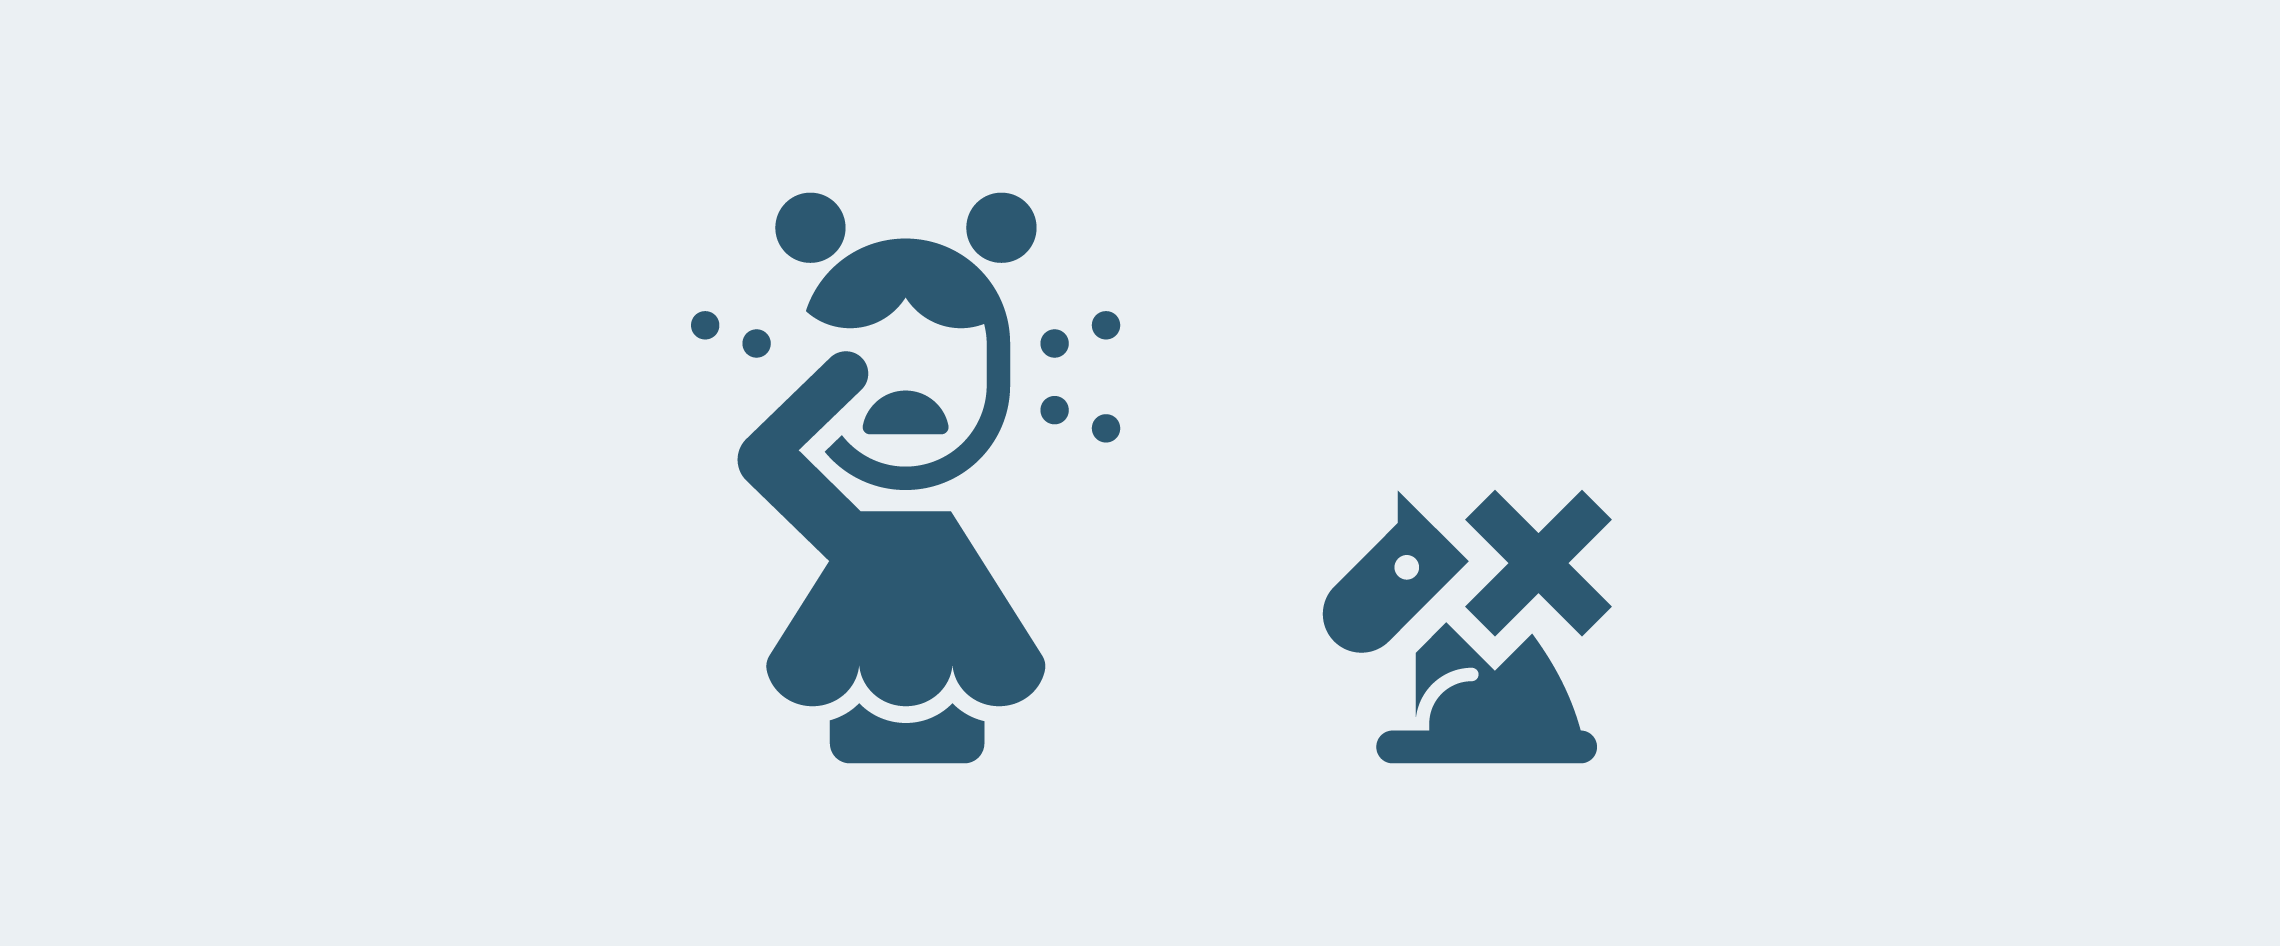 icon design of crying child with dogs not allowed symbol